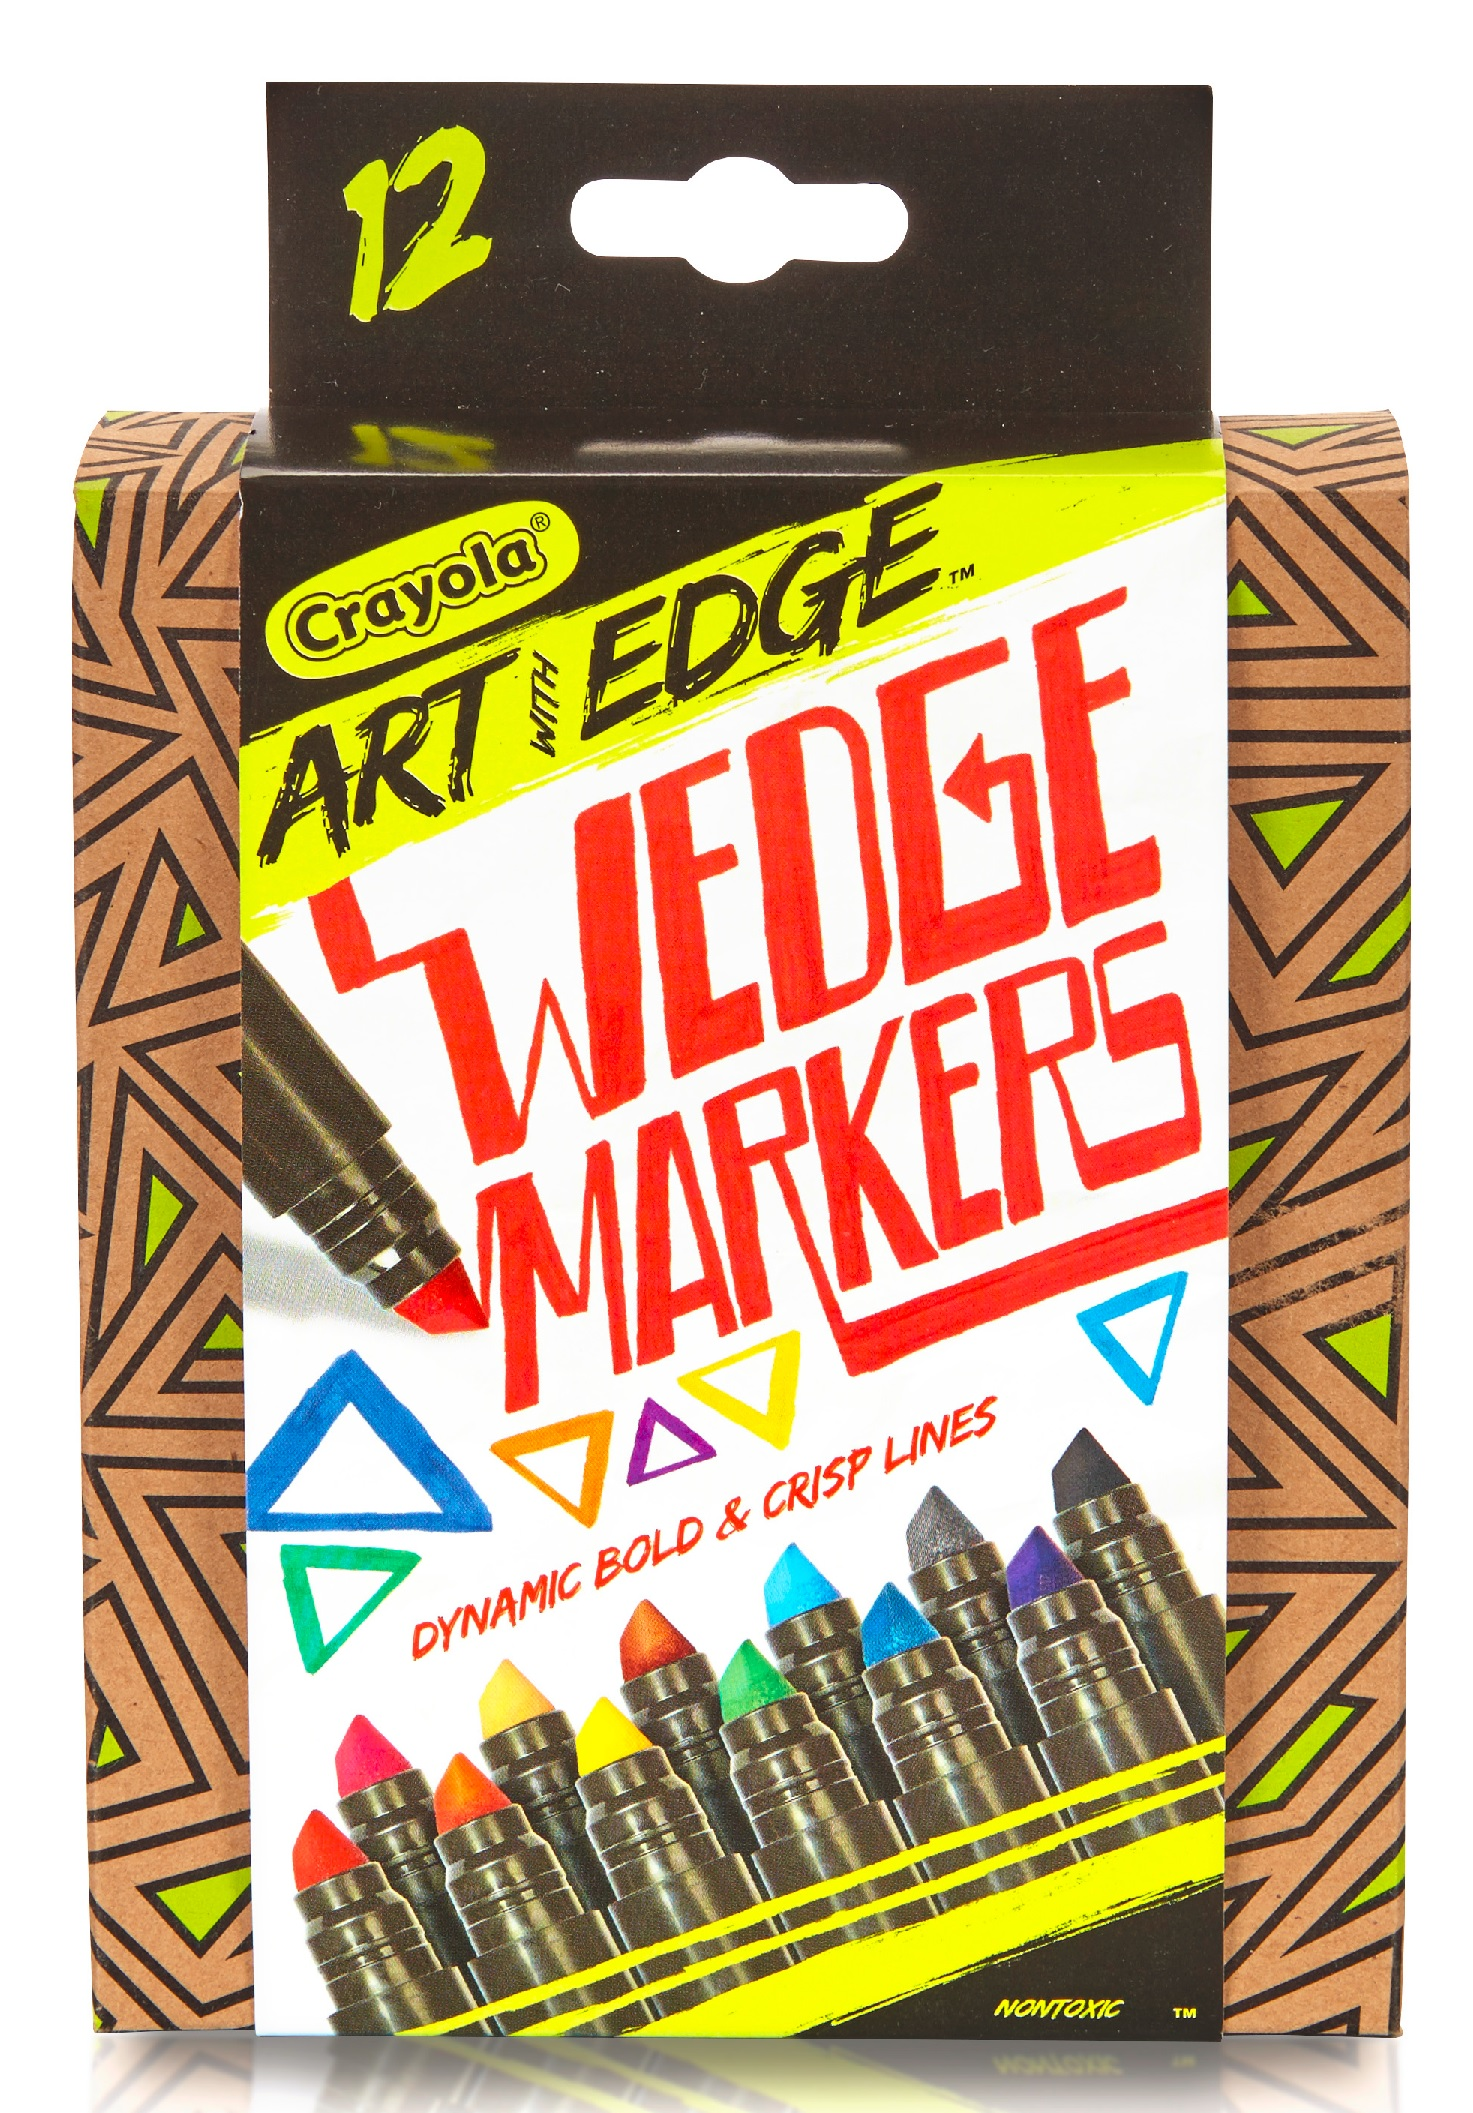 Crayola 12 Count Art with Edge Wedge Tip Markers Aged Up Coloring